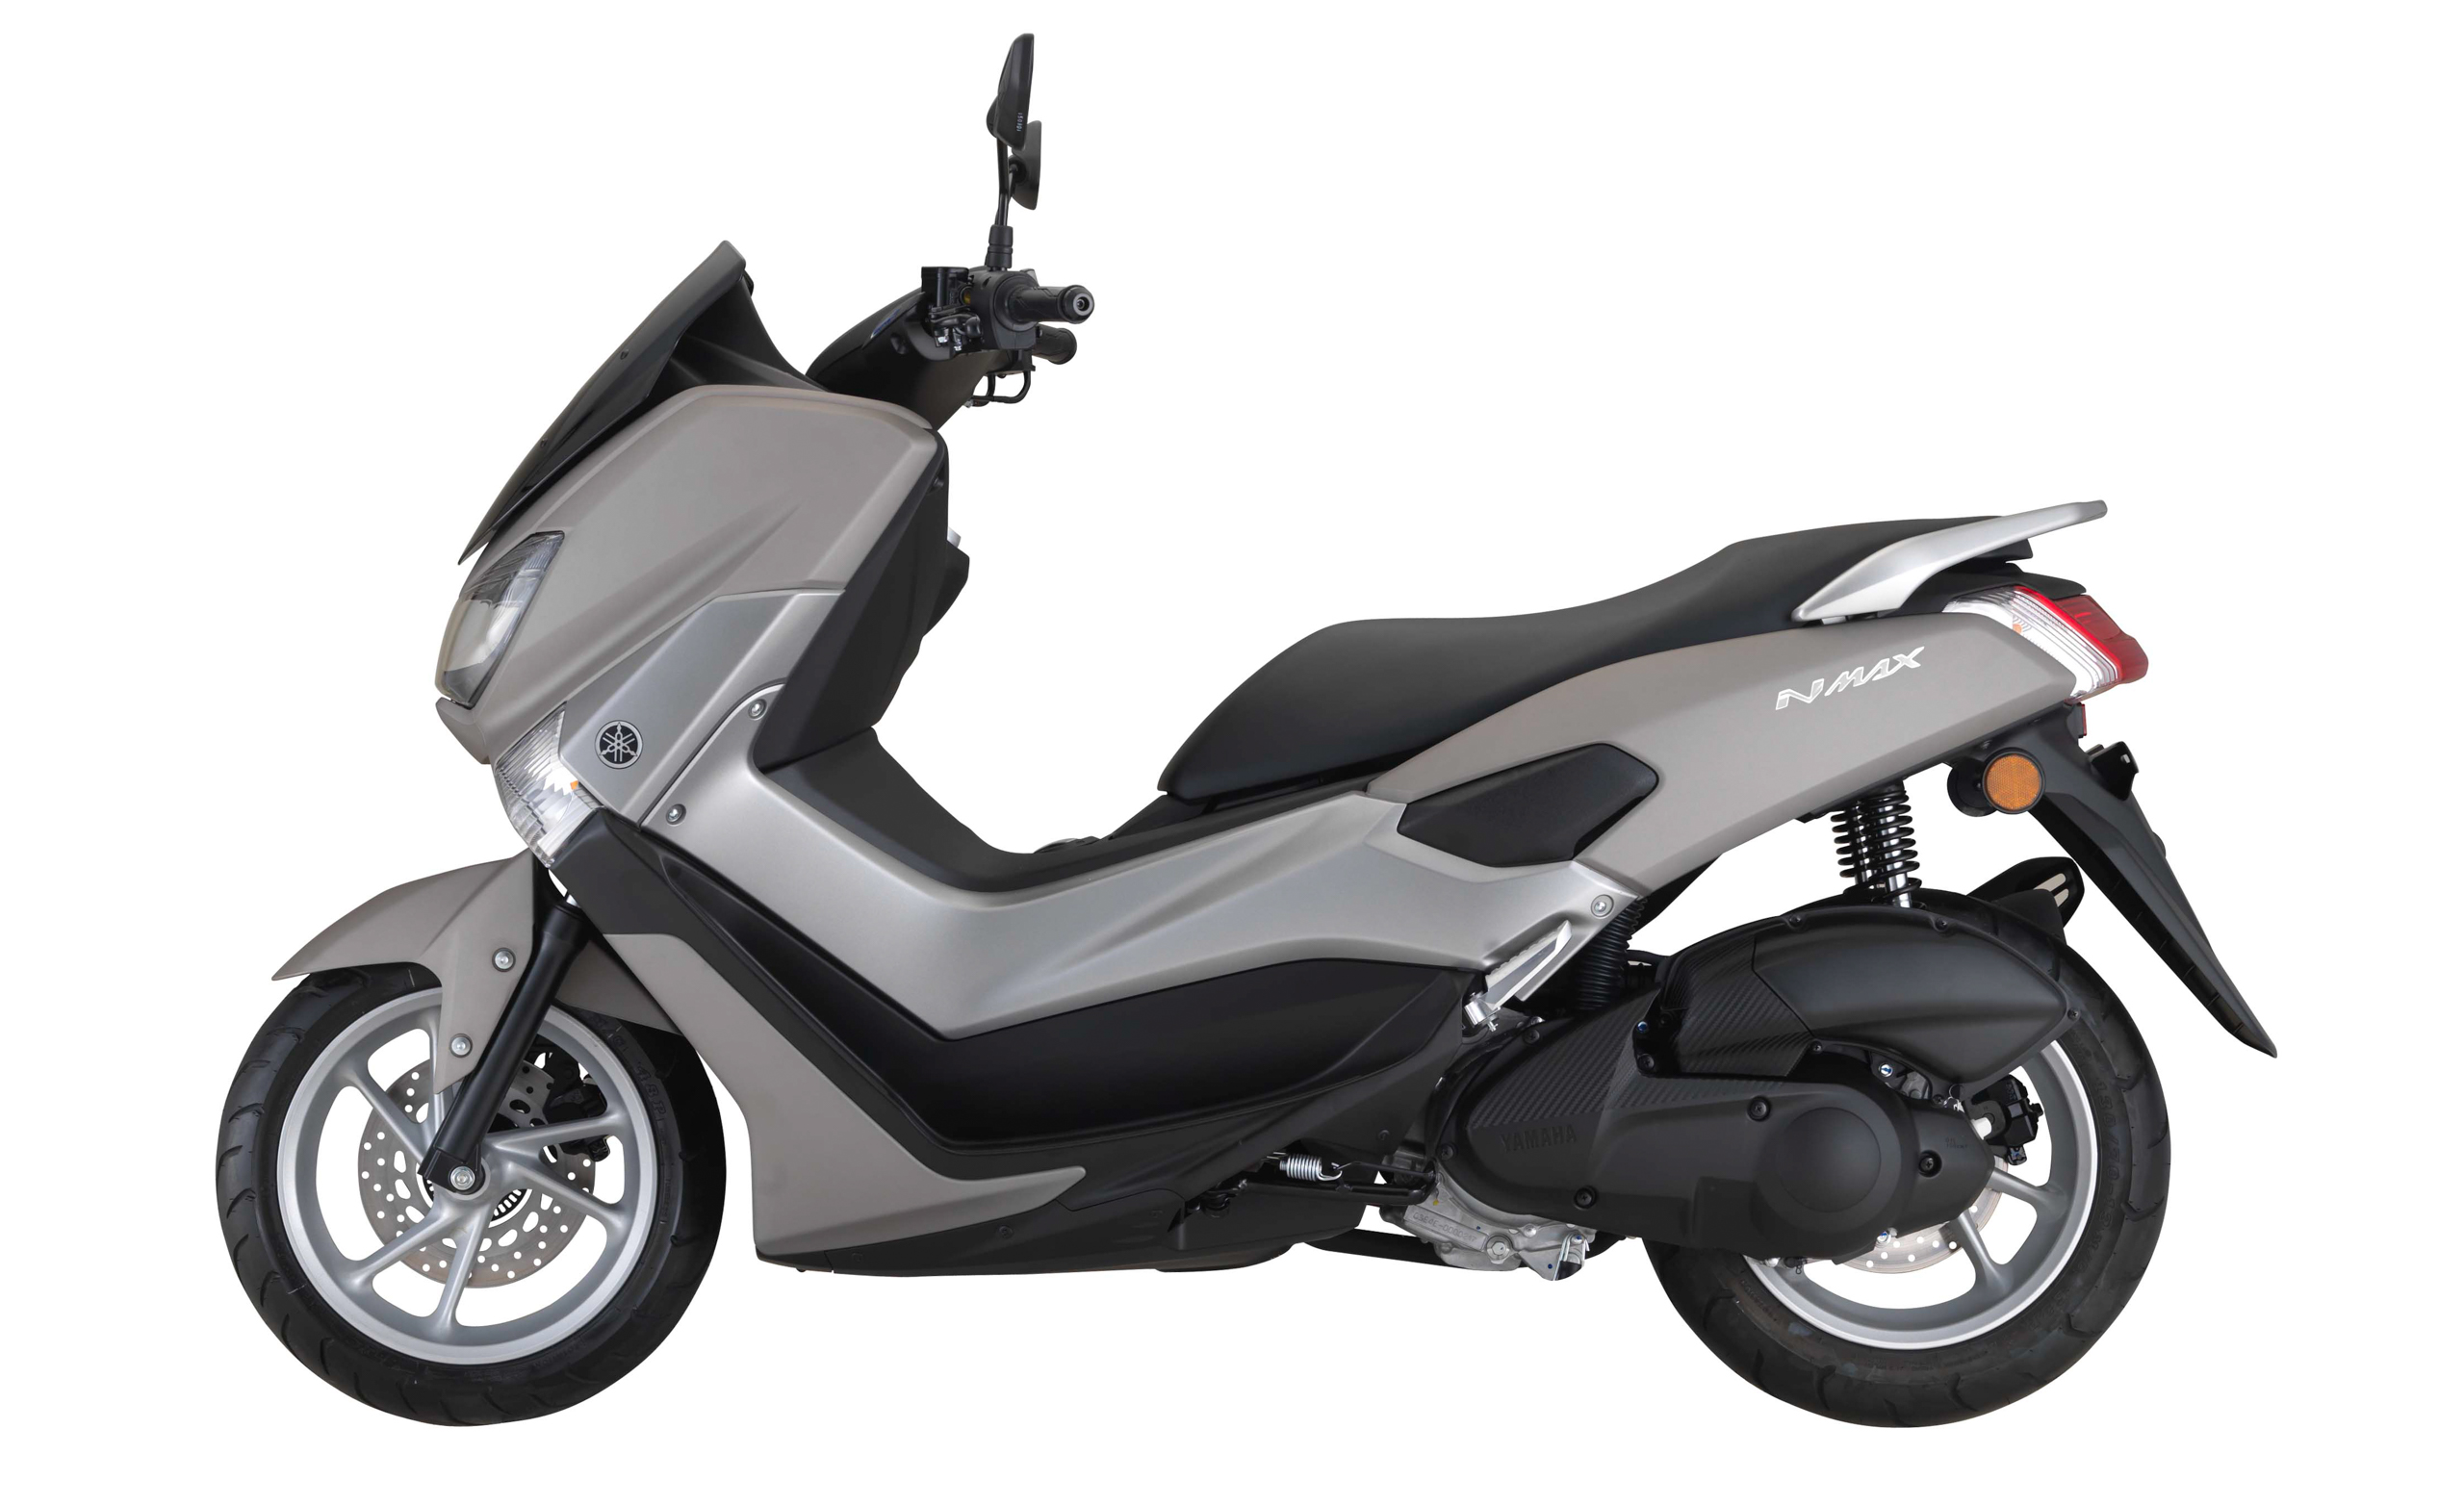 2016 Yamaha NMax Scooter Launched